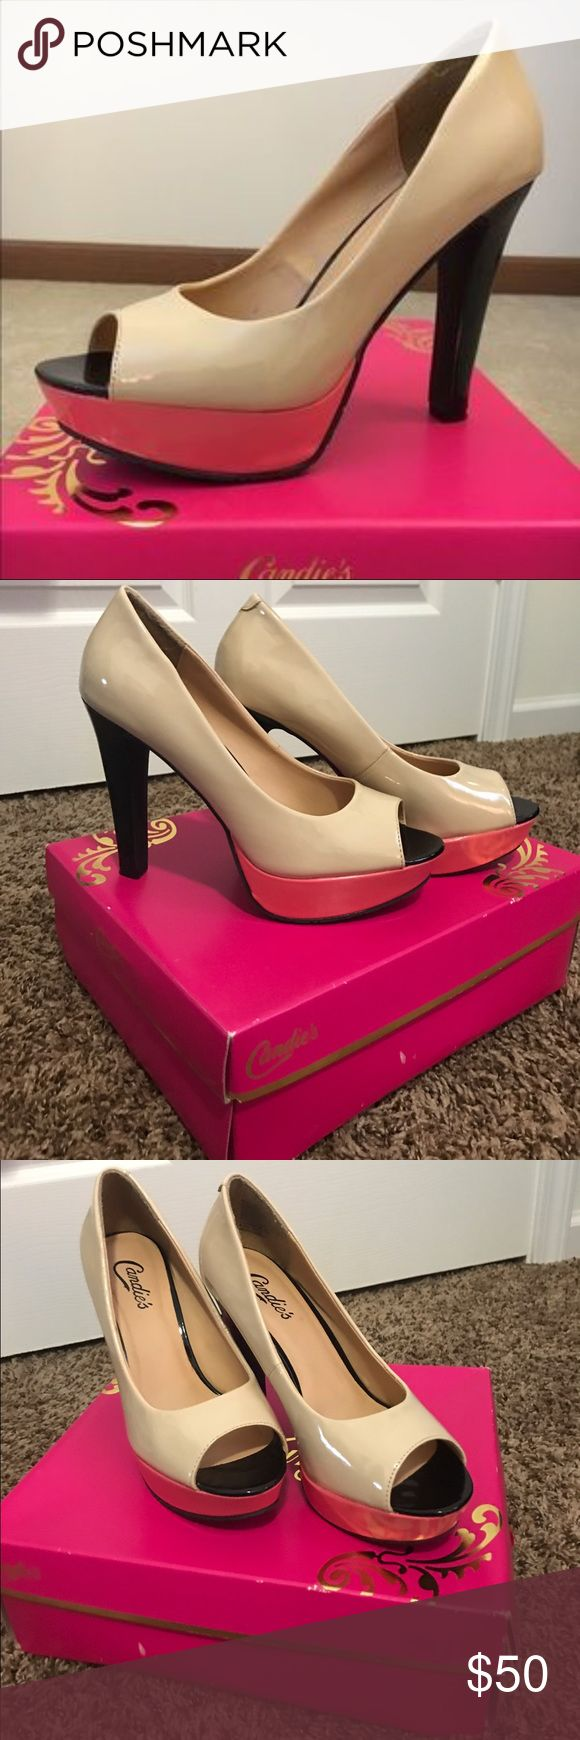 Candie's Coral & Cream Pumps Worn once, brand new condition. Comes with box! Color is casunny blush. Peep toe.💢Please buy with the intentions of knowing this may not fit you. You know you're size not me. So please don't give me a rating less then 5 if an item doesn't fit to your liking💢 Bundle & Save‼️ Candie's Shoes Heels